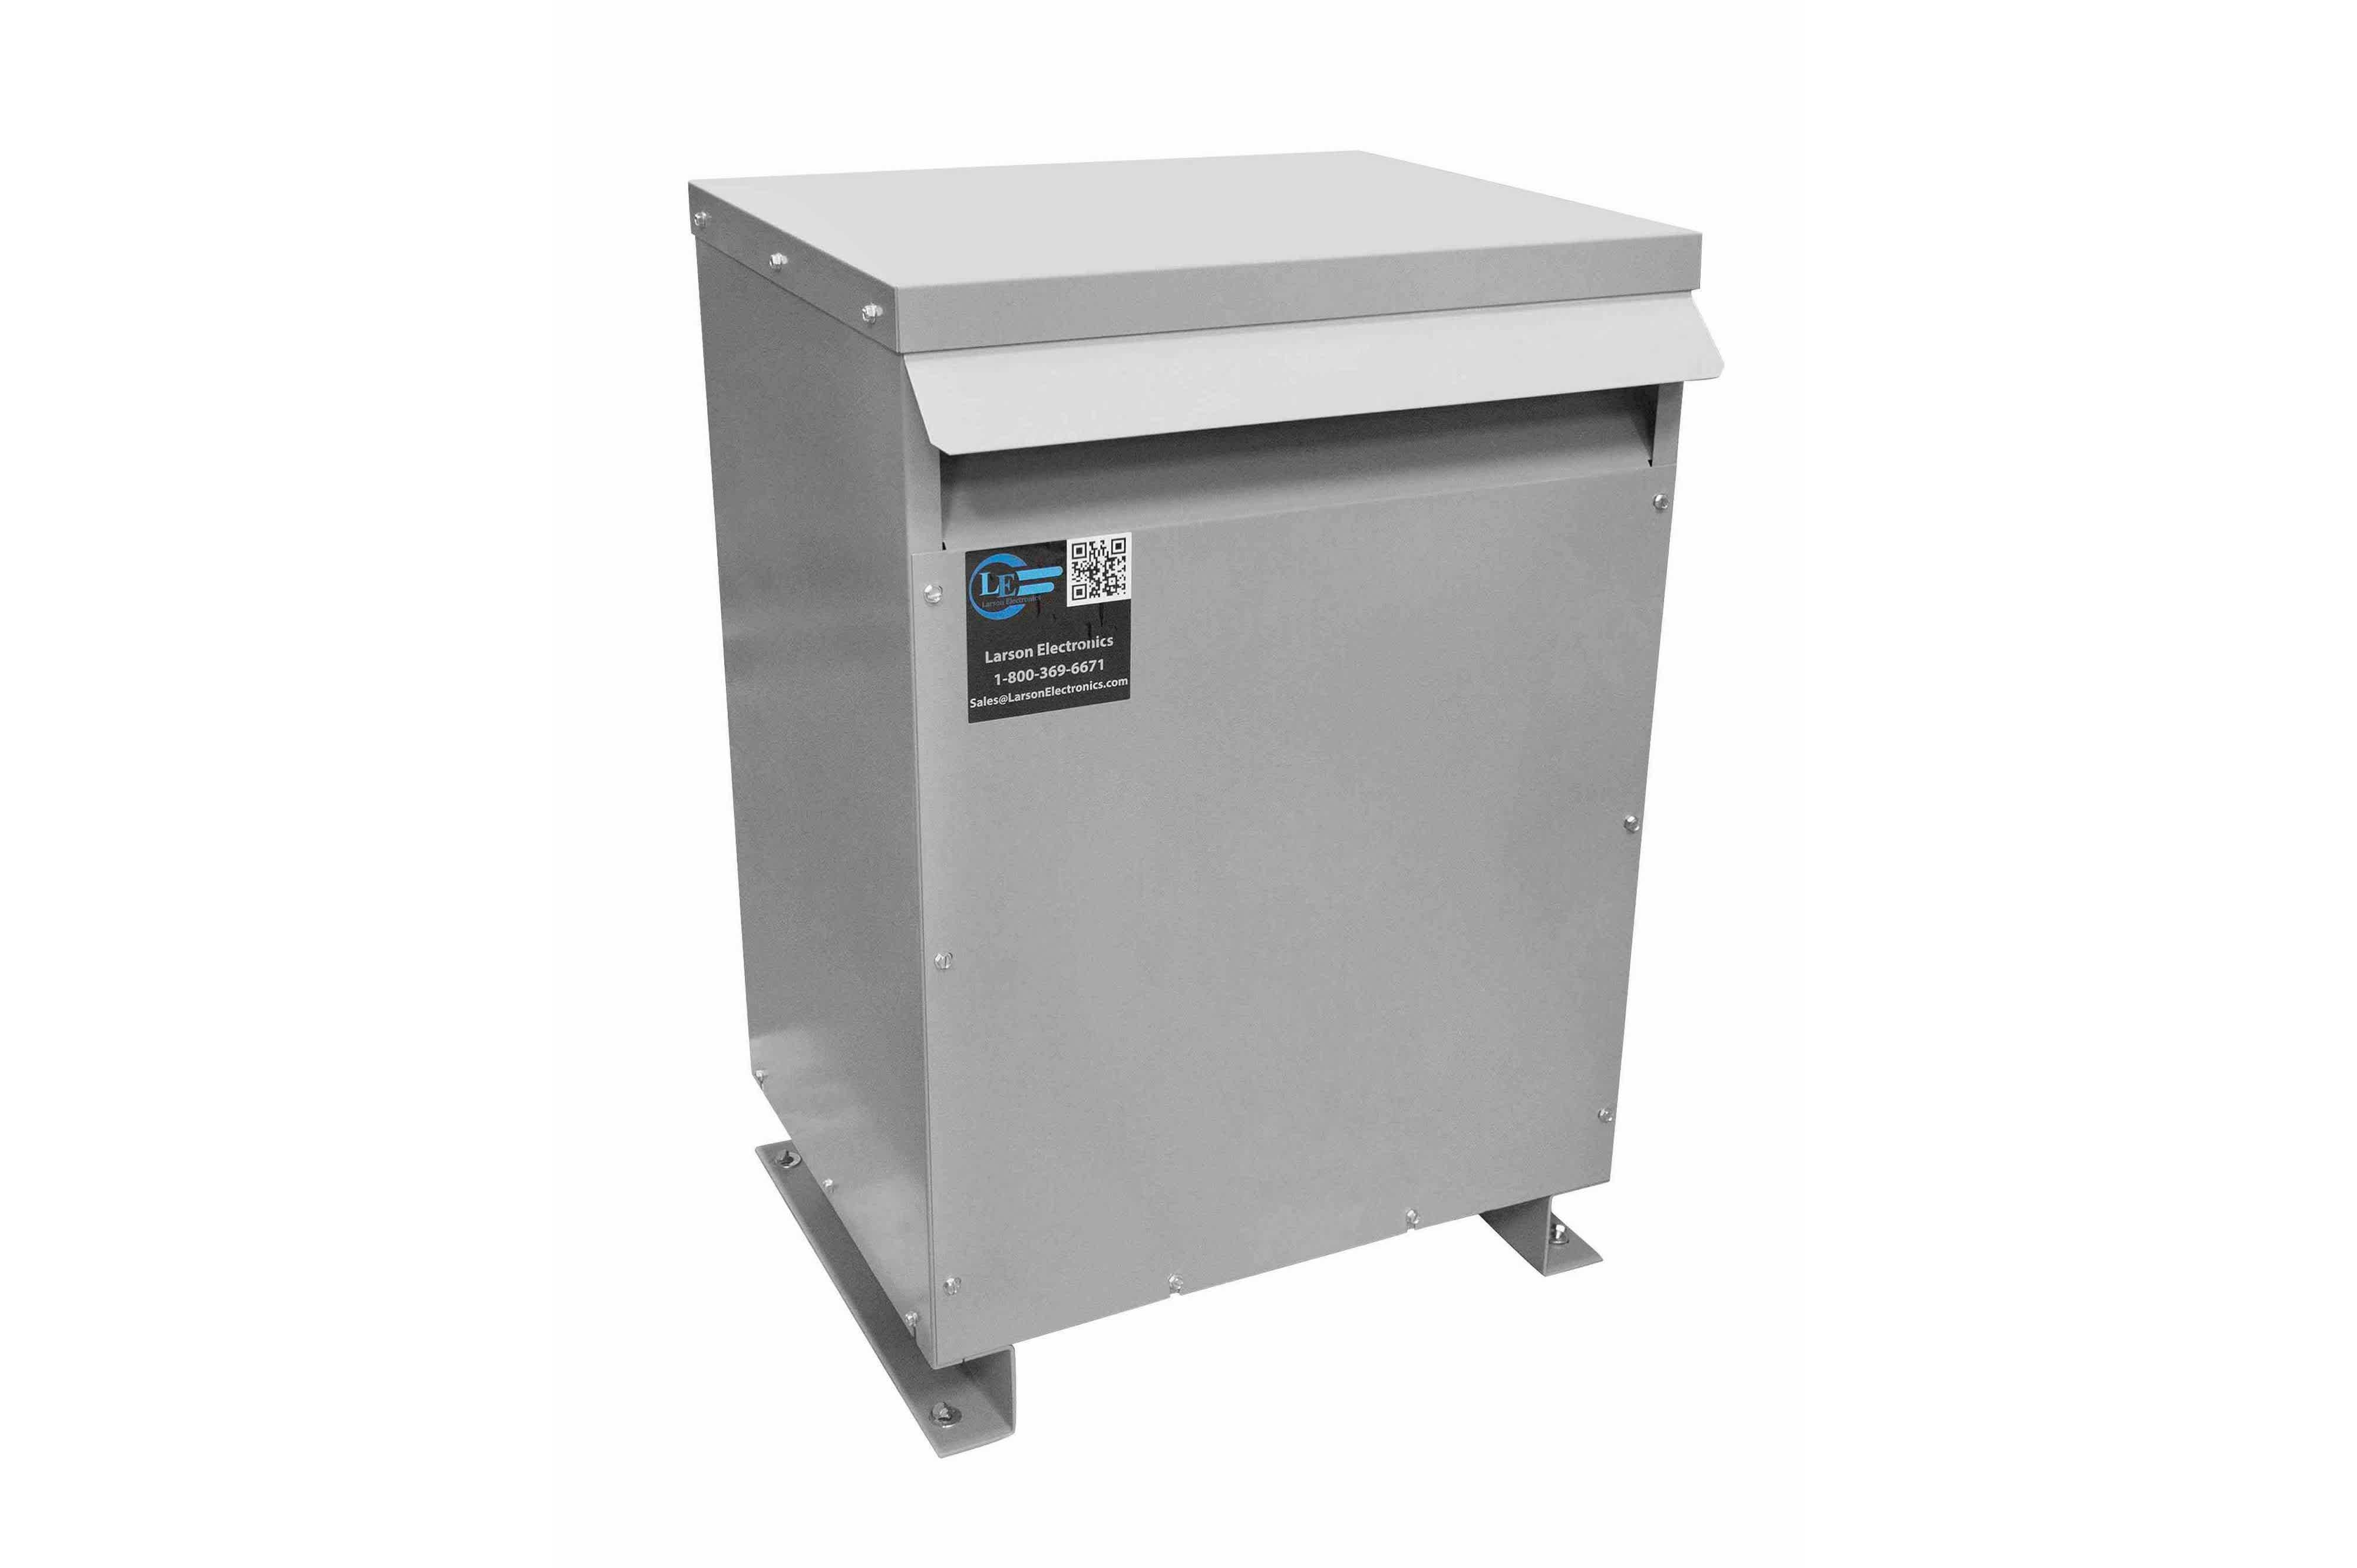 300 kVA 3PH DOE Transformer, 208V Delta Primary, 415Y/240 Wye-N Secondary, N3R, Ventilated, 60 Hz